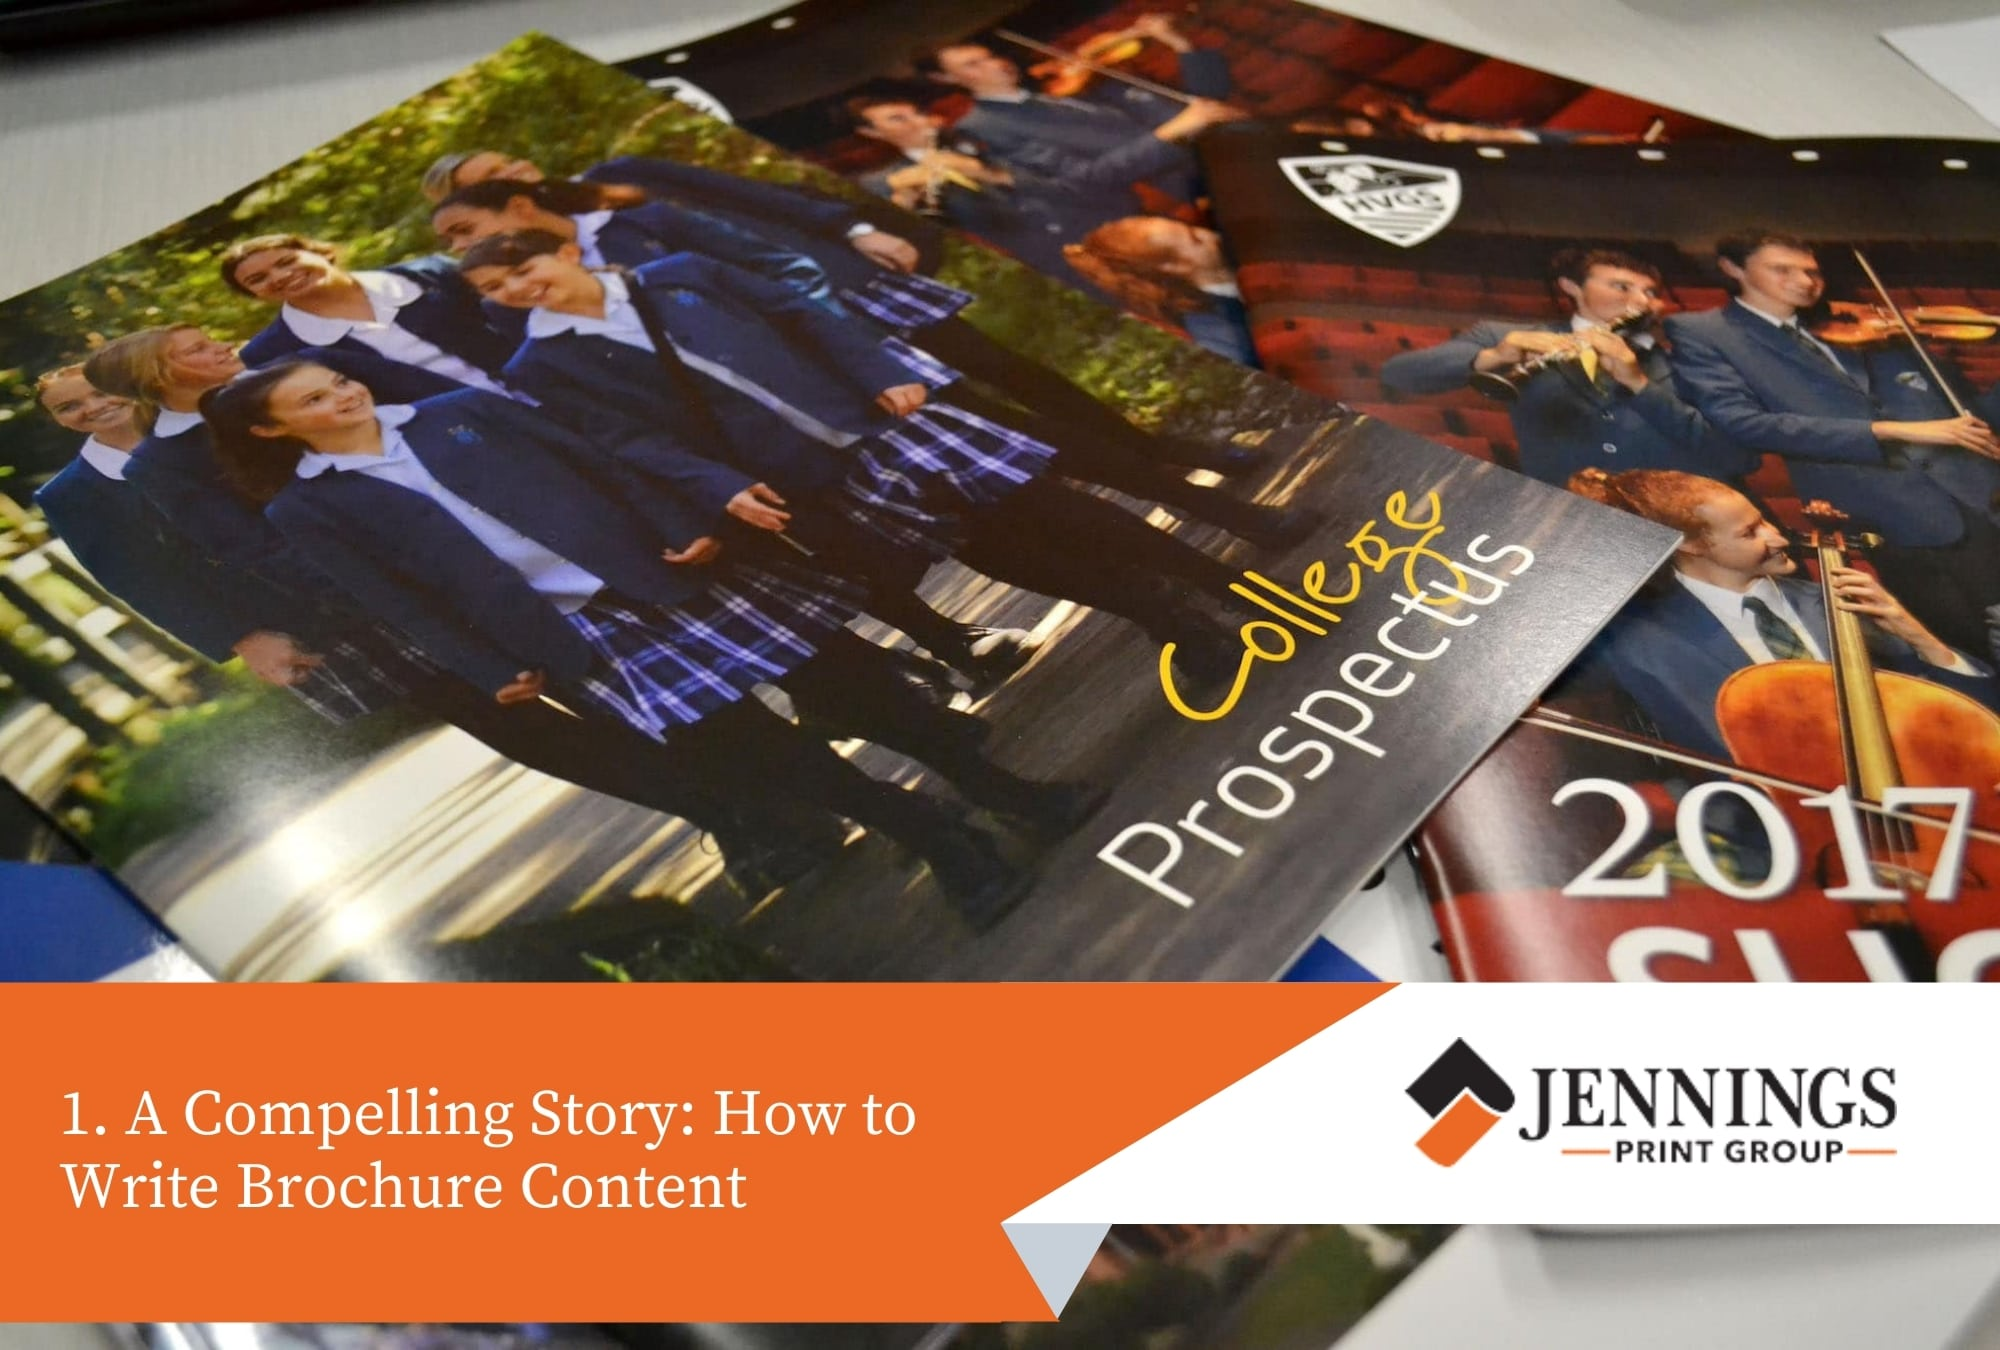 A Compelling Story How to Write Brochure Content